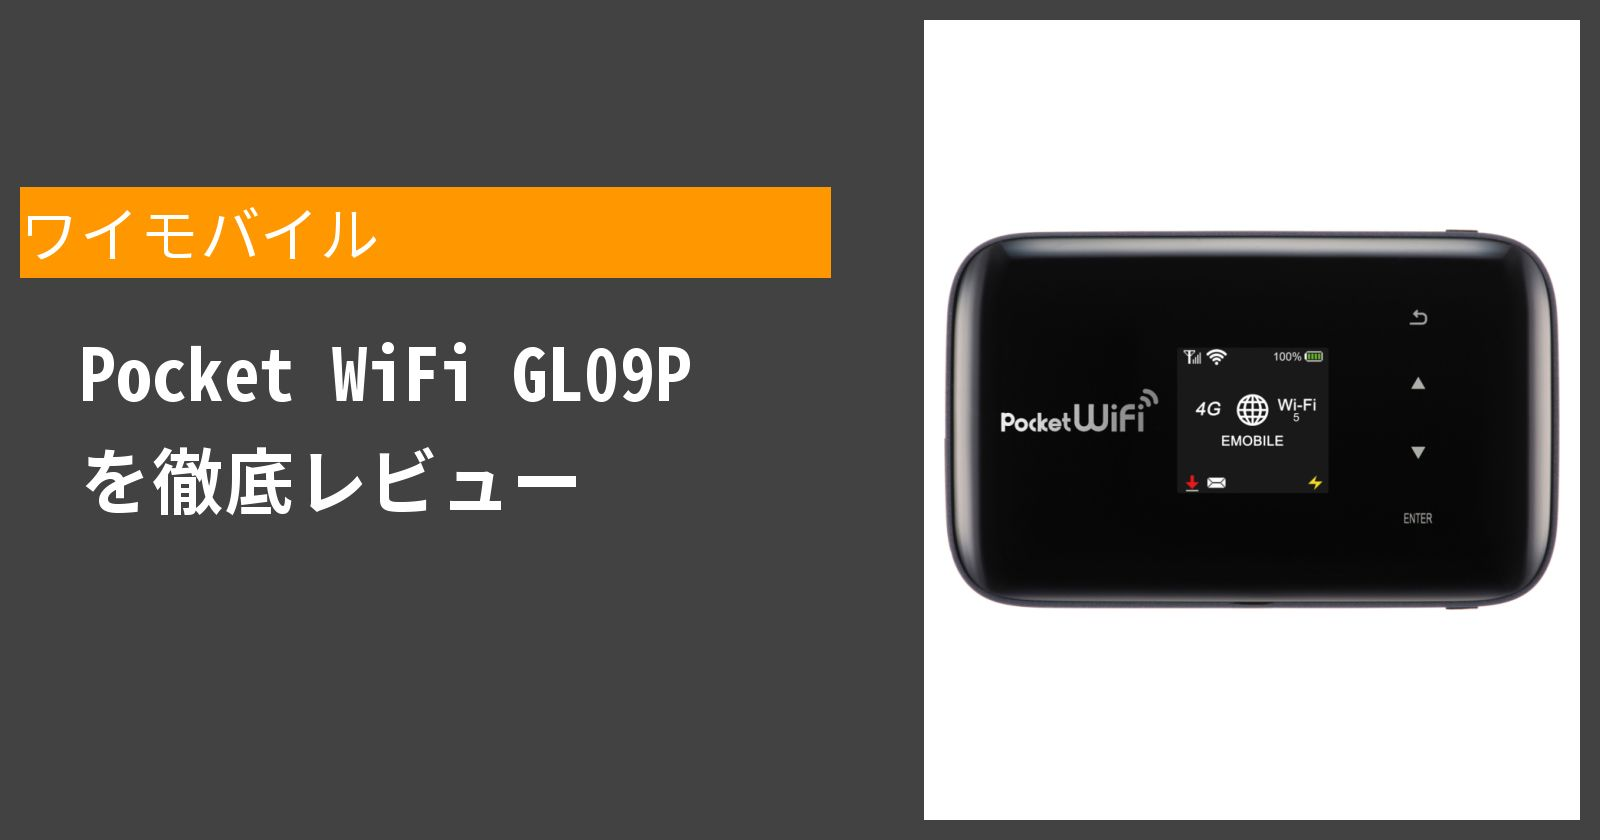 Pocket WiFi GL09Pを徹底評価